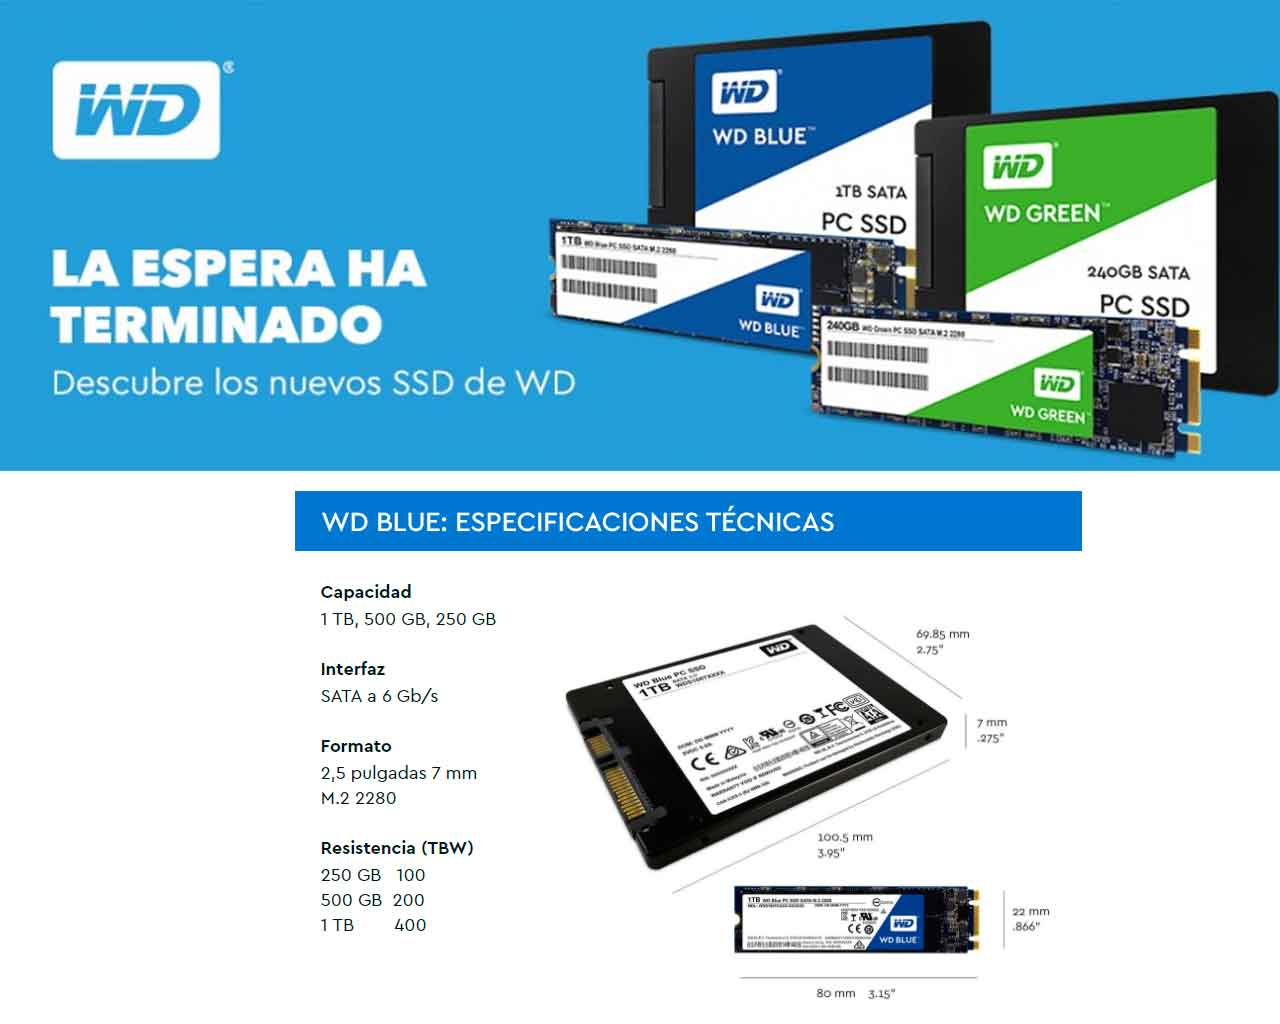 SSD WD Blue está disponible en tres versiones